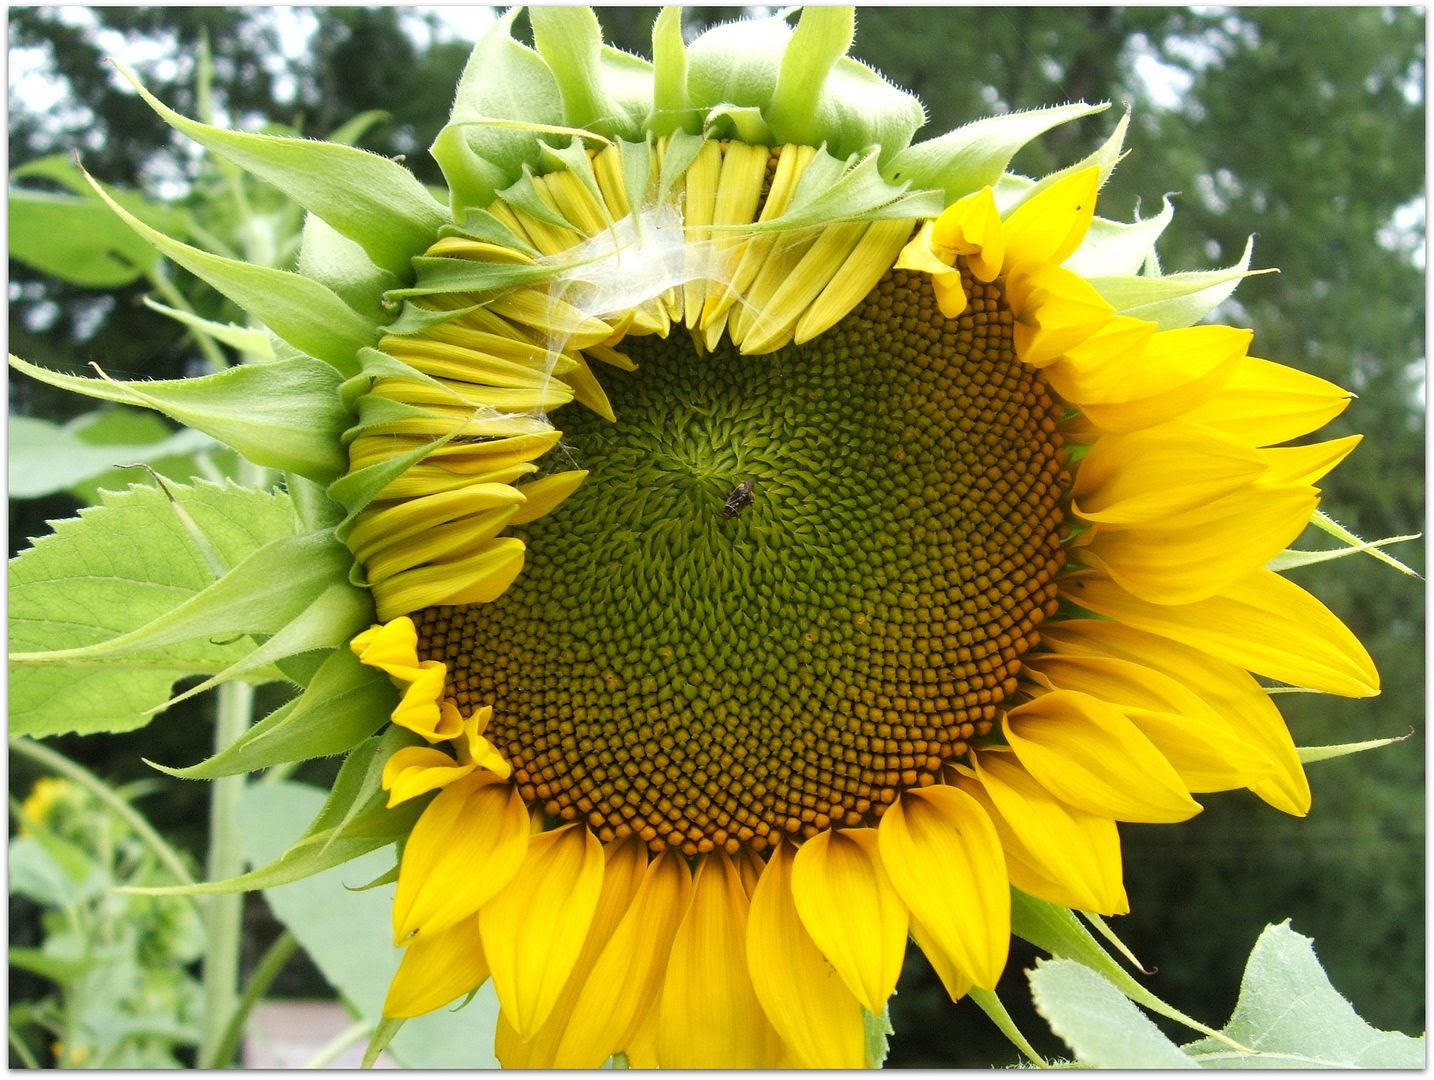 Giant Gray Stripe Sunflower by Angie Ouellette-Tower for godsgrowinggarden.com photo 010_zps9daa47cc.jpg